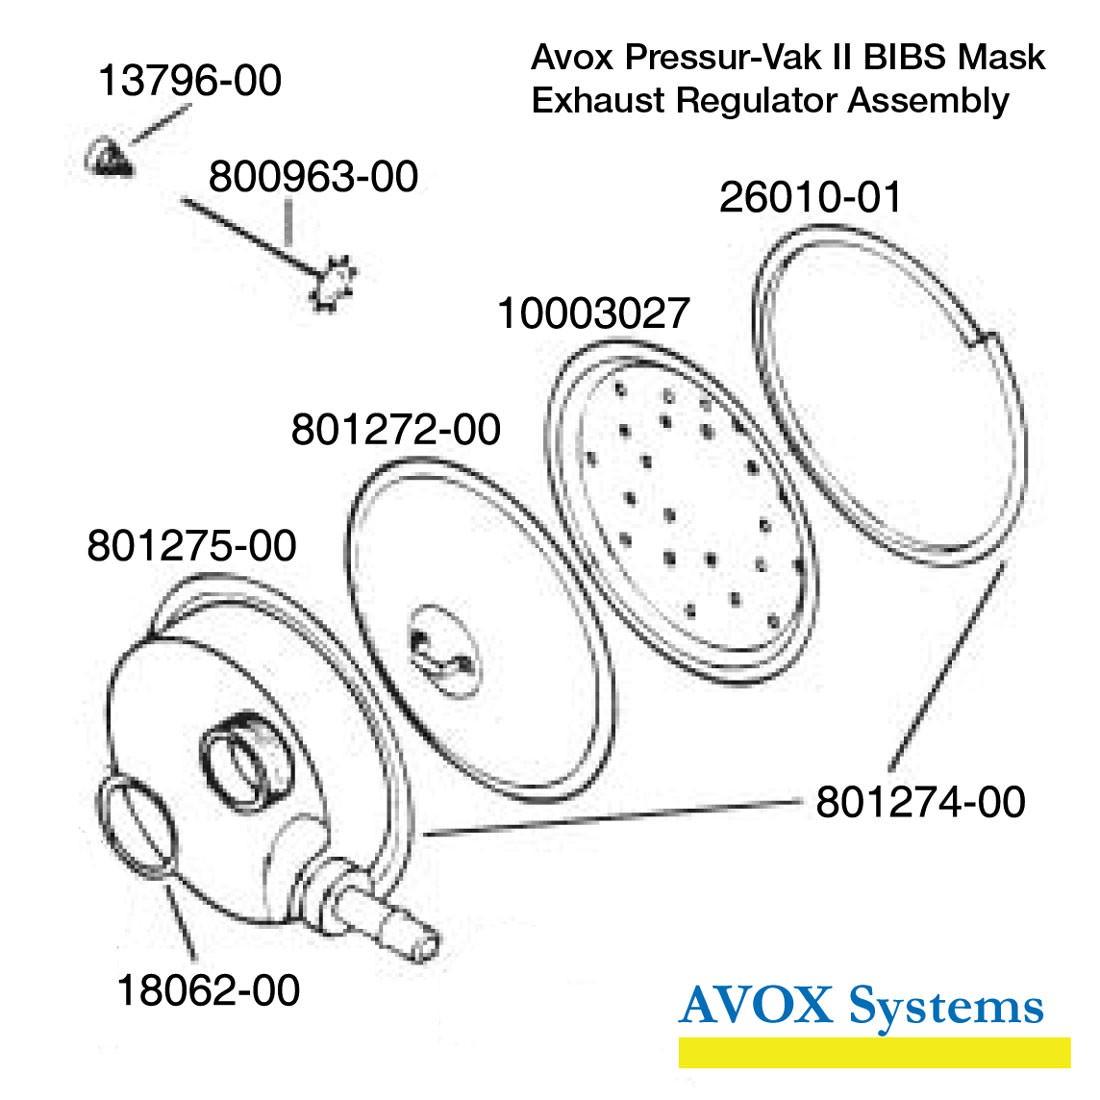 Avox 803139-01-XX Pressur-Vak II - without Face Seal/Harness without 1st Stage Regulator Assembly without Microphone- Exhaust Regulator Assembly